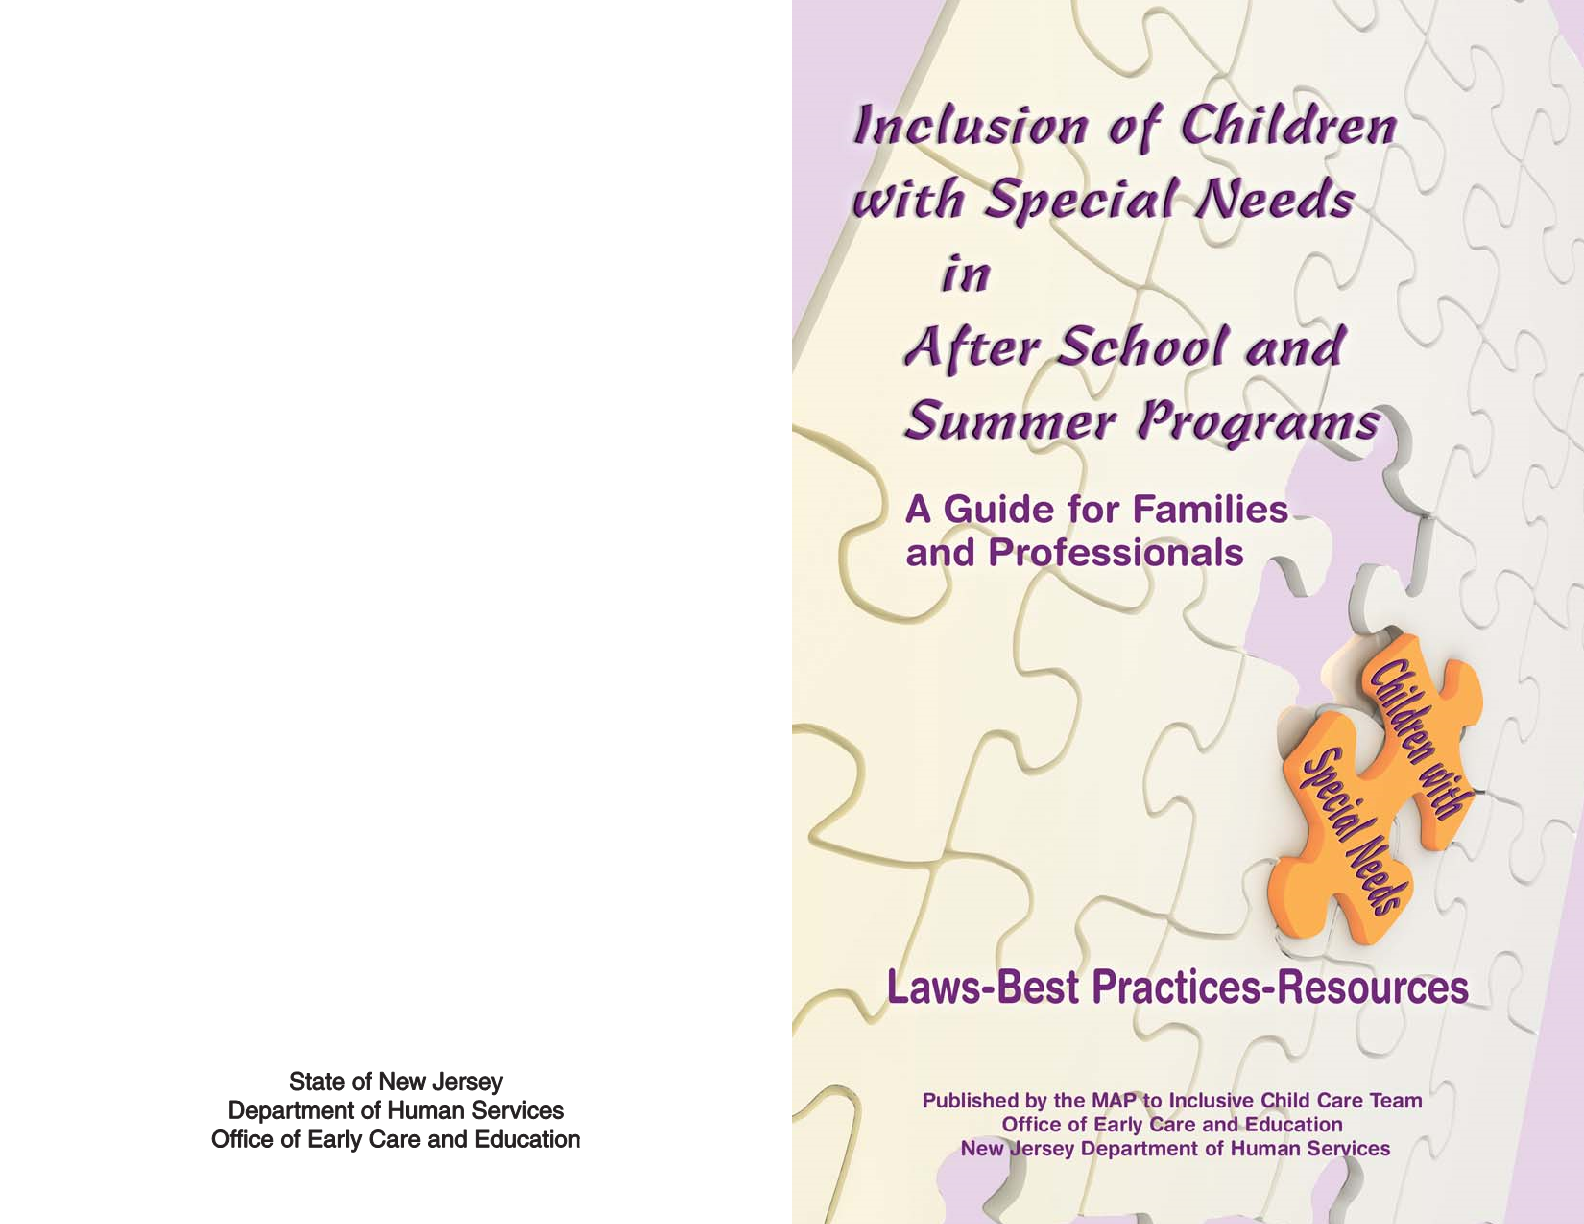 Inclusion of Children with Special Needs in After School & Summer Programs Resource Guide